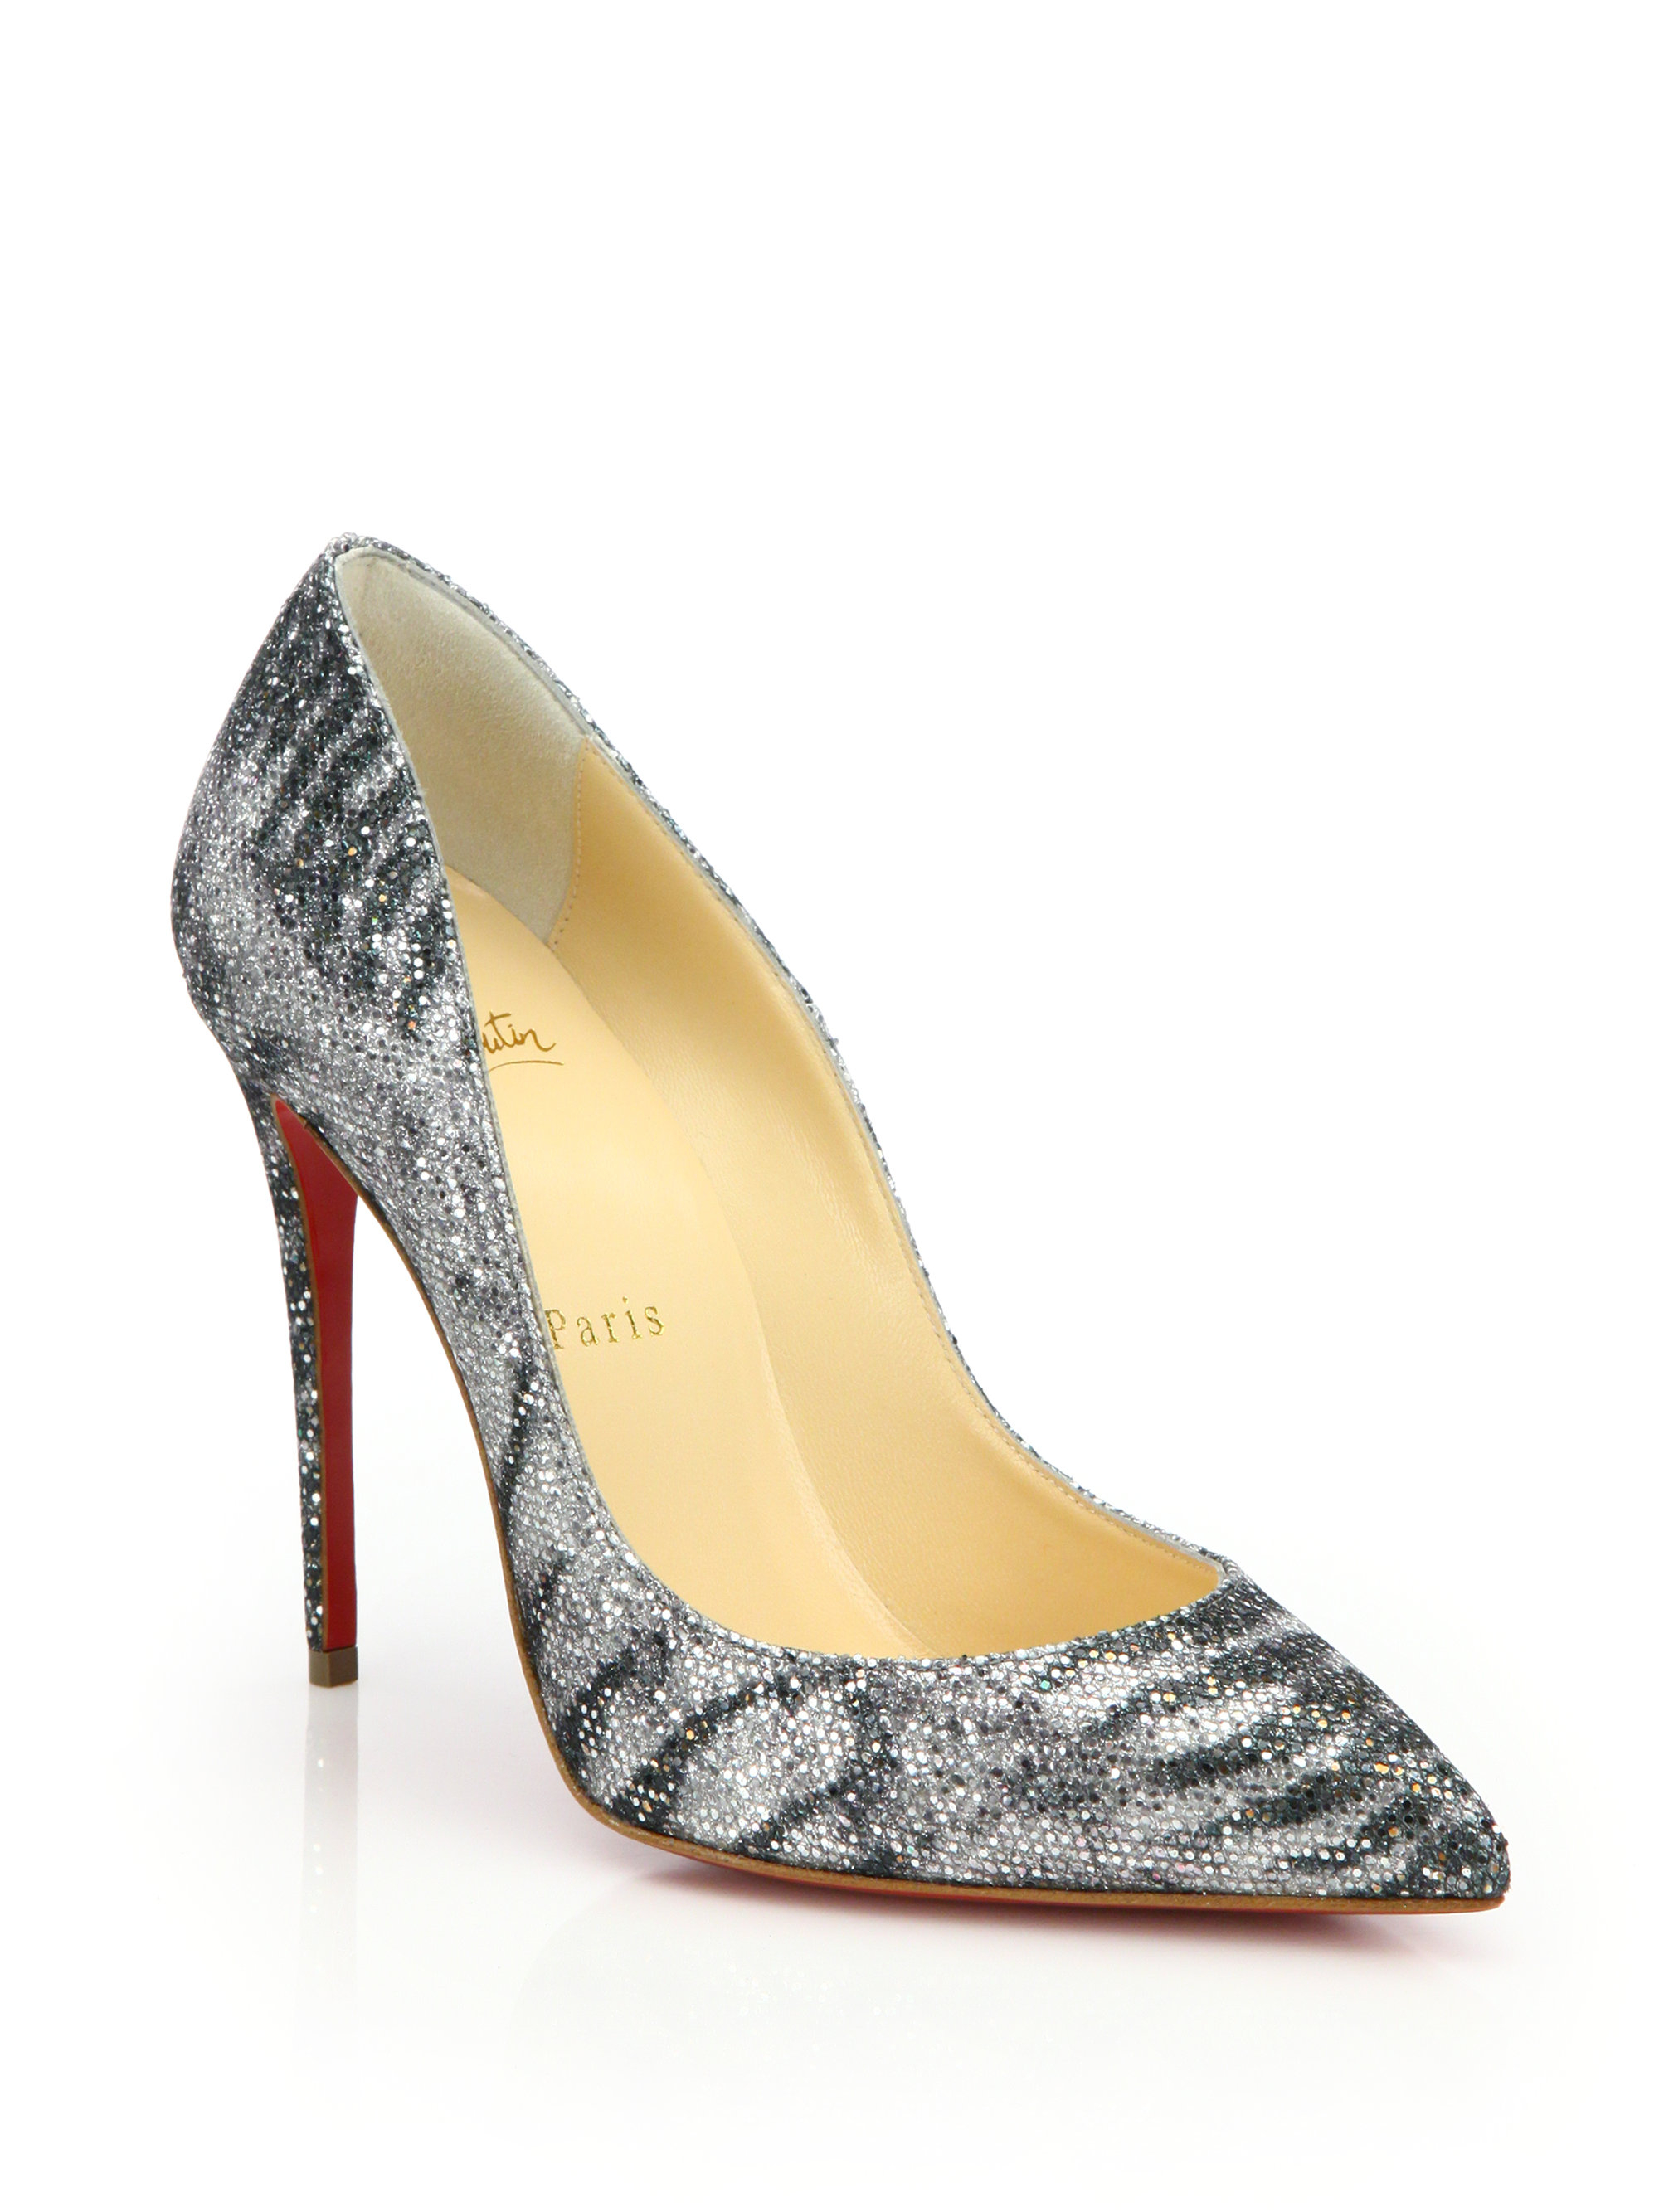 spikes shoes for men - Christian louboutin Pigalle Glittered Animal-print Pumps in Silver ...